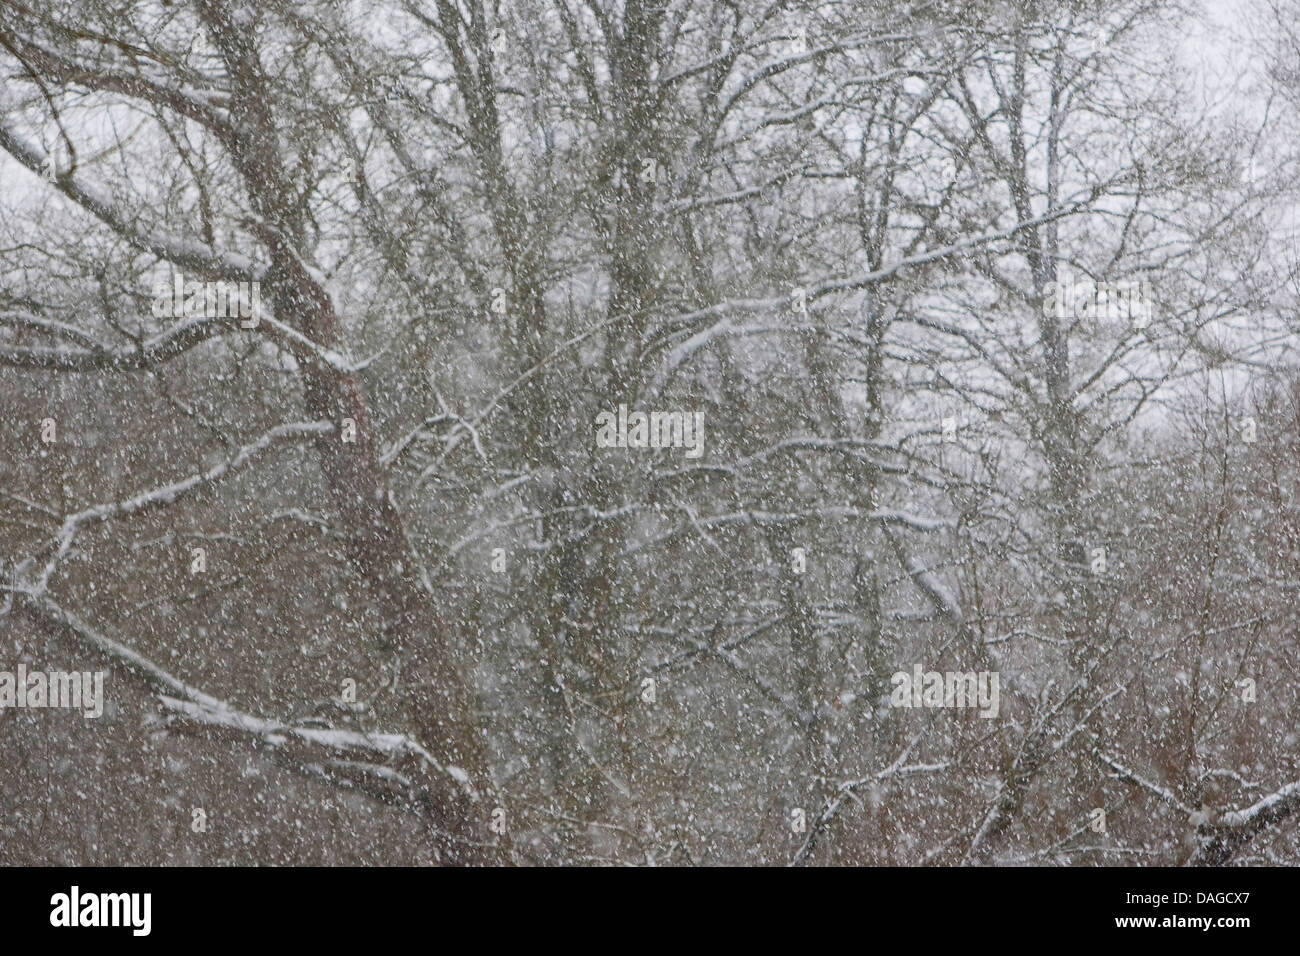 snowfall in winter, Germany - Stock Image